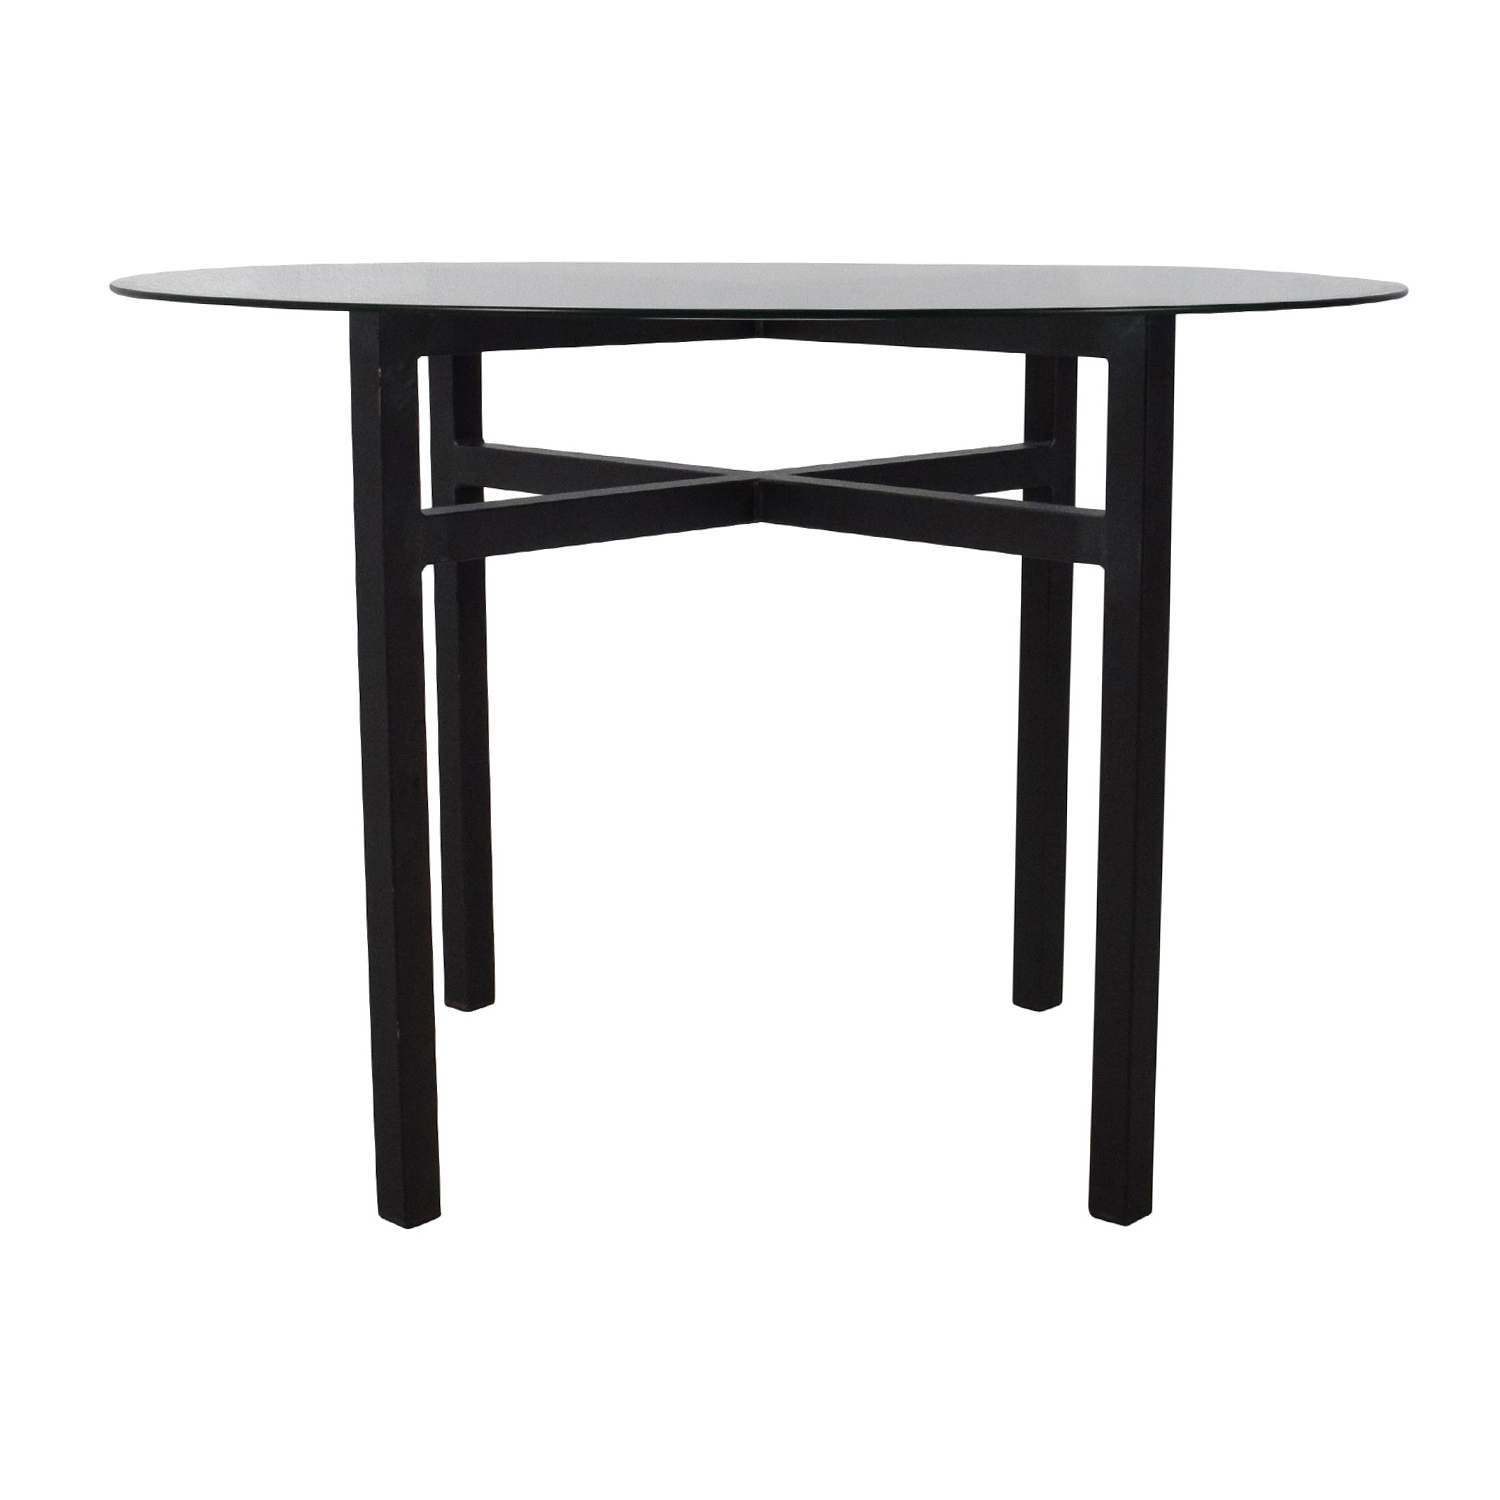 [%69% Off – Room And Board Room & Board Benson Glass Top Dining Table Within Newest Benson Rectangle Dining Tables|Benson Rectangle Dining Tables For Well Known 69% Off – Room And Board Room & Board Benson Glass Top Dining Table|Most Up To Date Benson Rectangle Dining Tables With 69% Off – Room And Board Room & Board Benson Glass Top Dining Table|Most Recent 69% Off – Room And Board Room & Board Benson Glass Top Dining Table Inside Benson Rectangle Dining Tables%] (View 2 of 25)